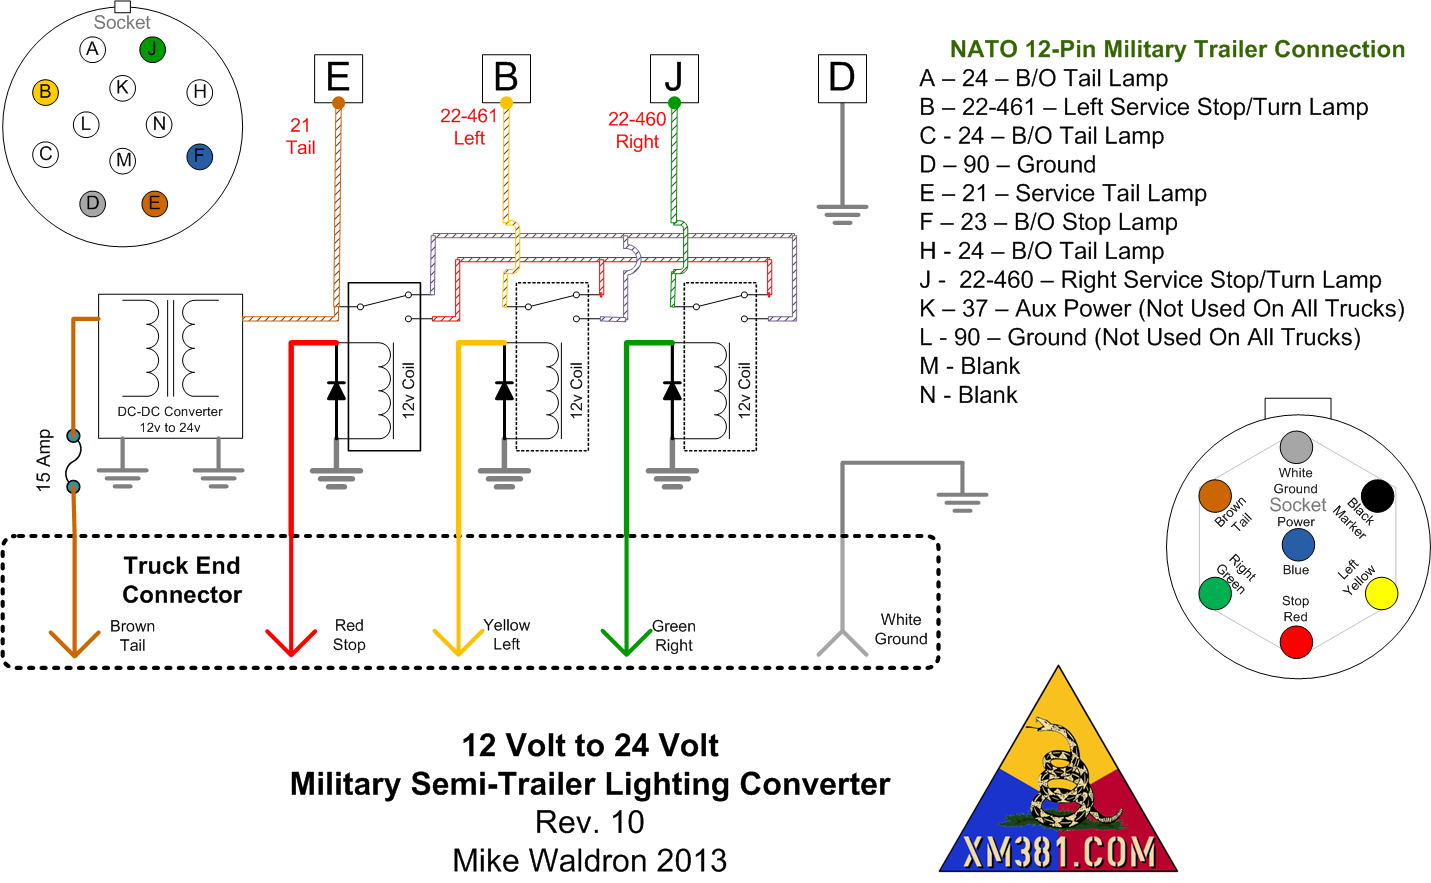 ... military trailer's NATO socket.